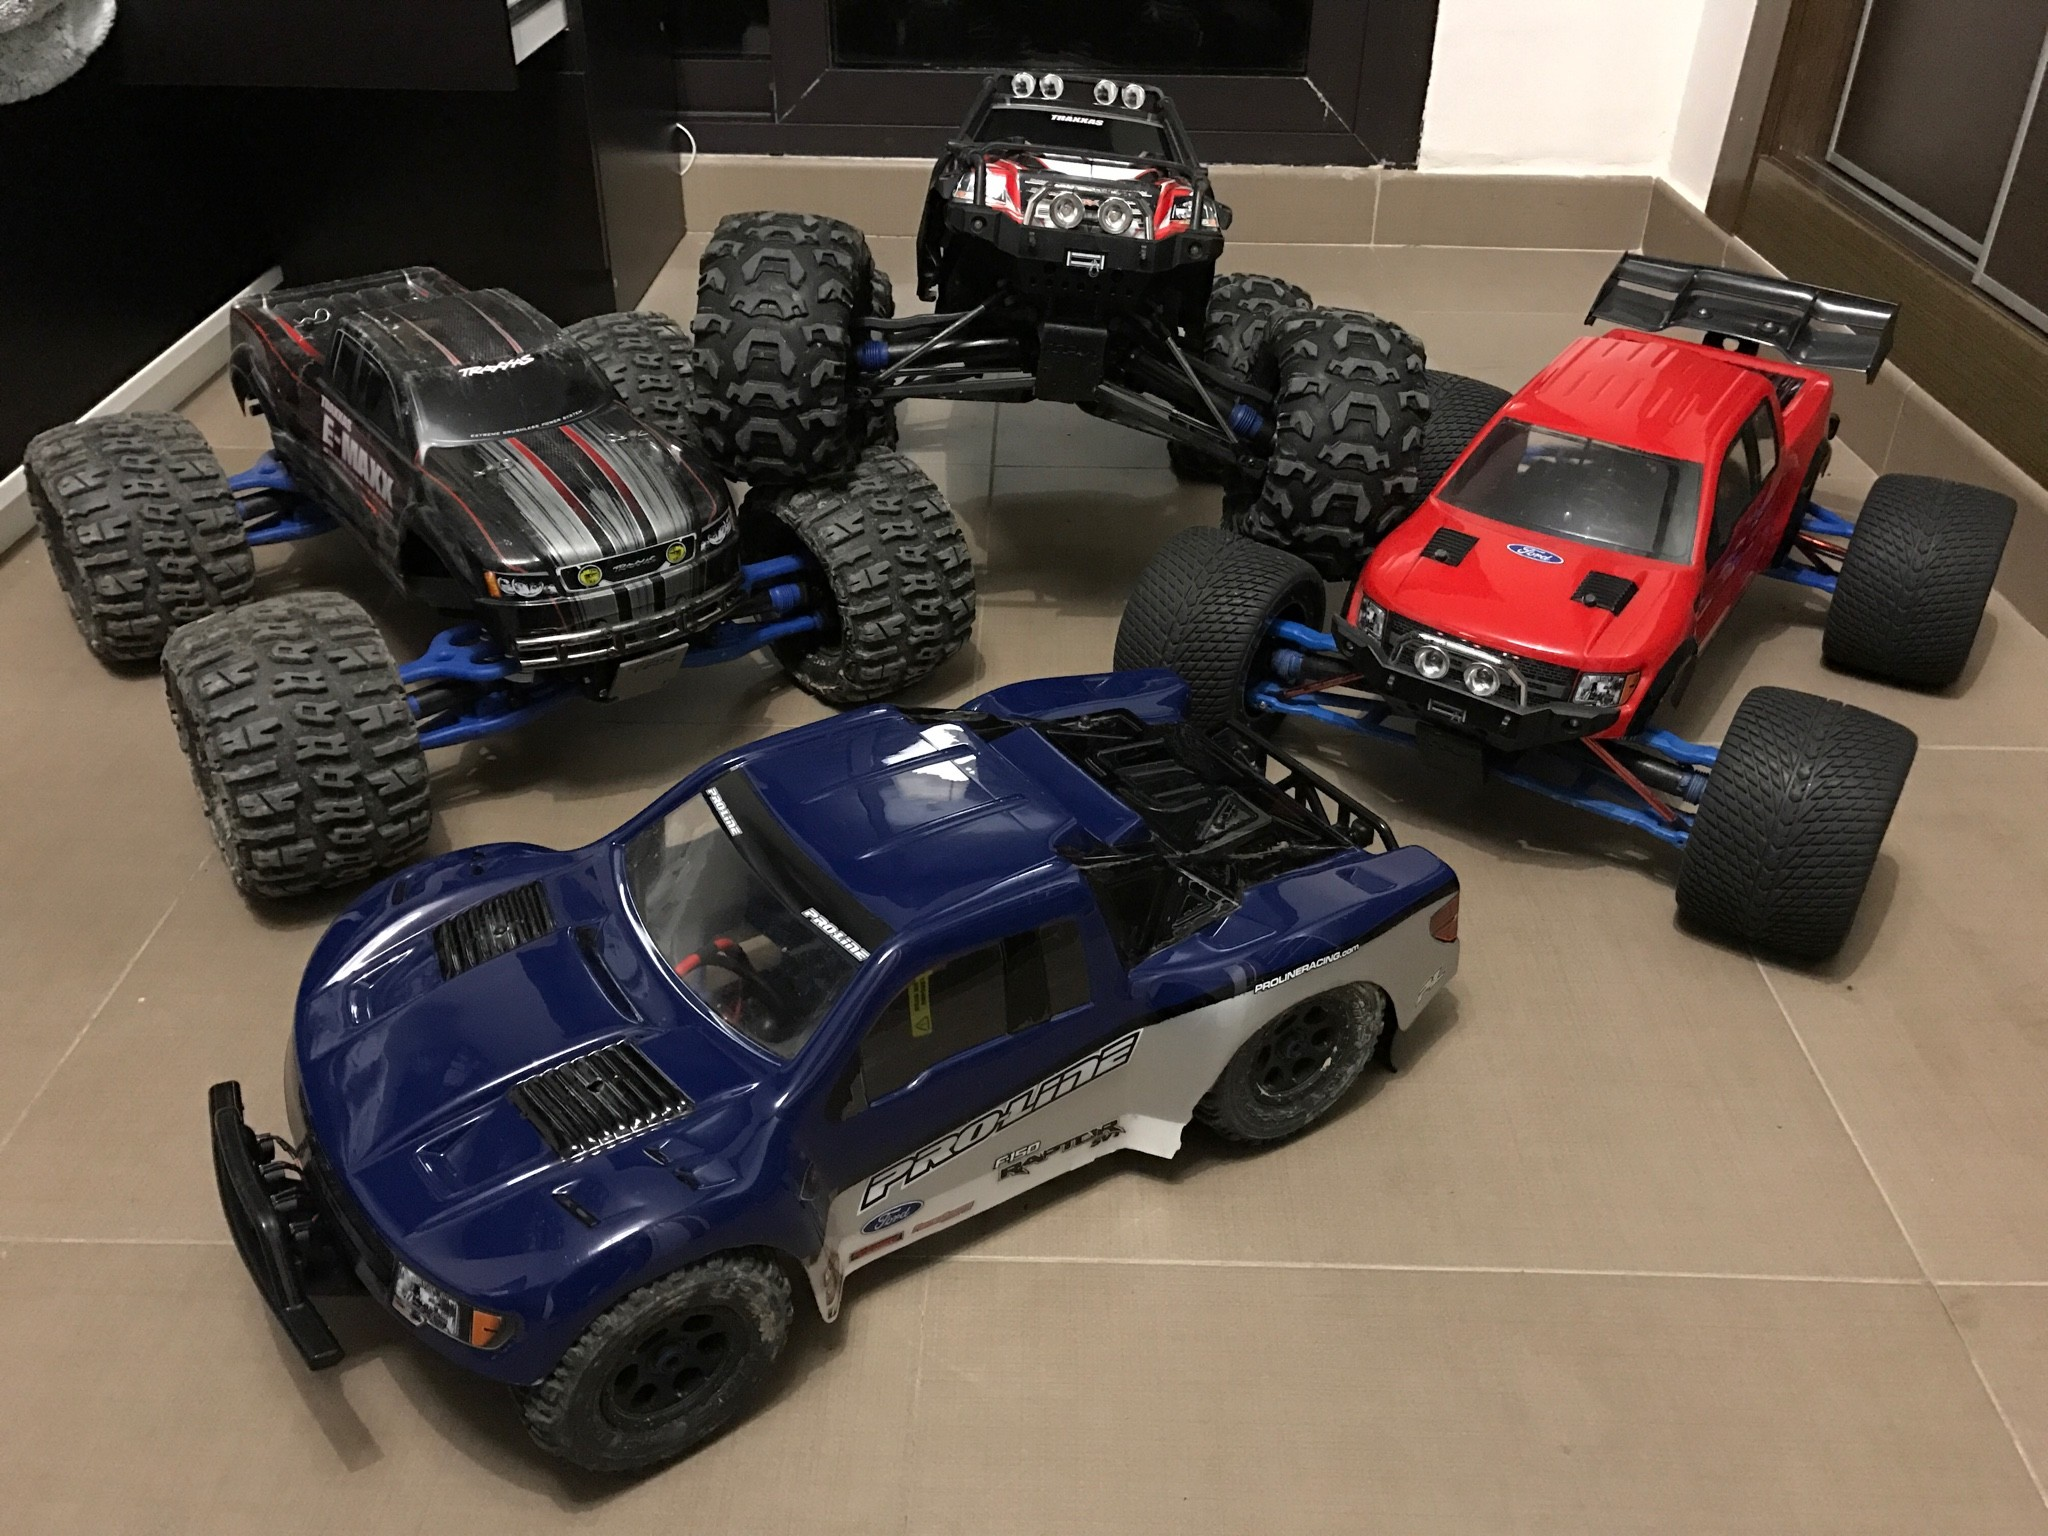 2048x1536 Traxxas E-Revo Brushless, Traxxas E-Maxx Brushless and Slash 4x4 Ultimate